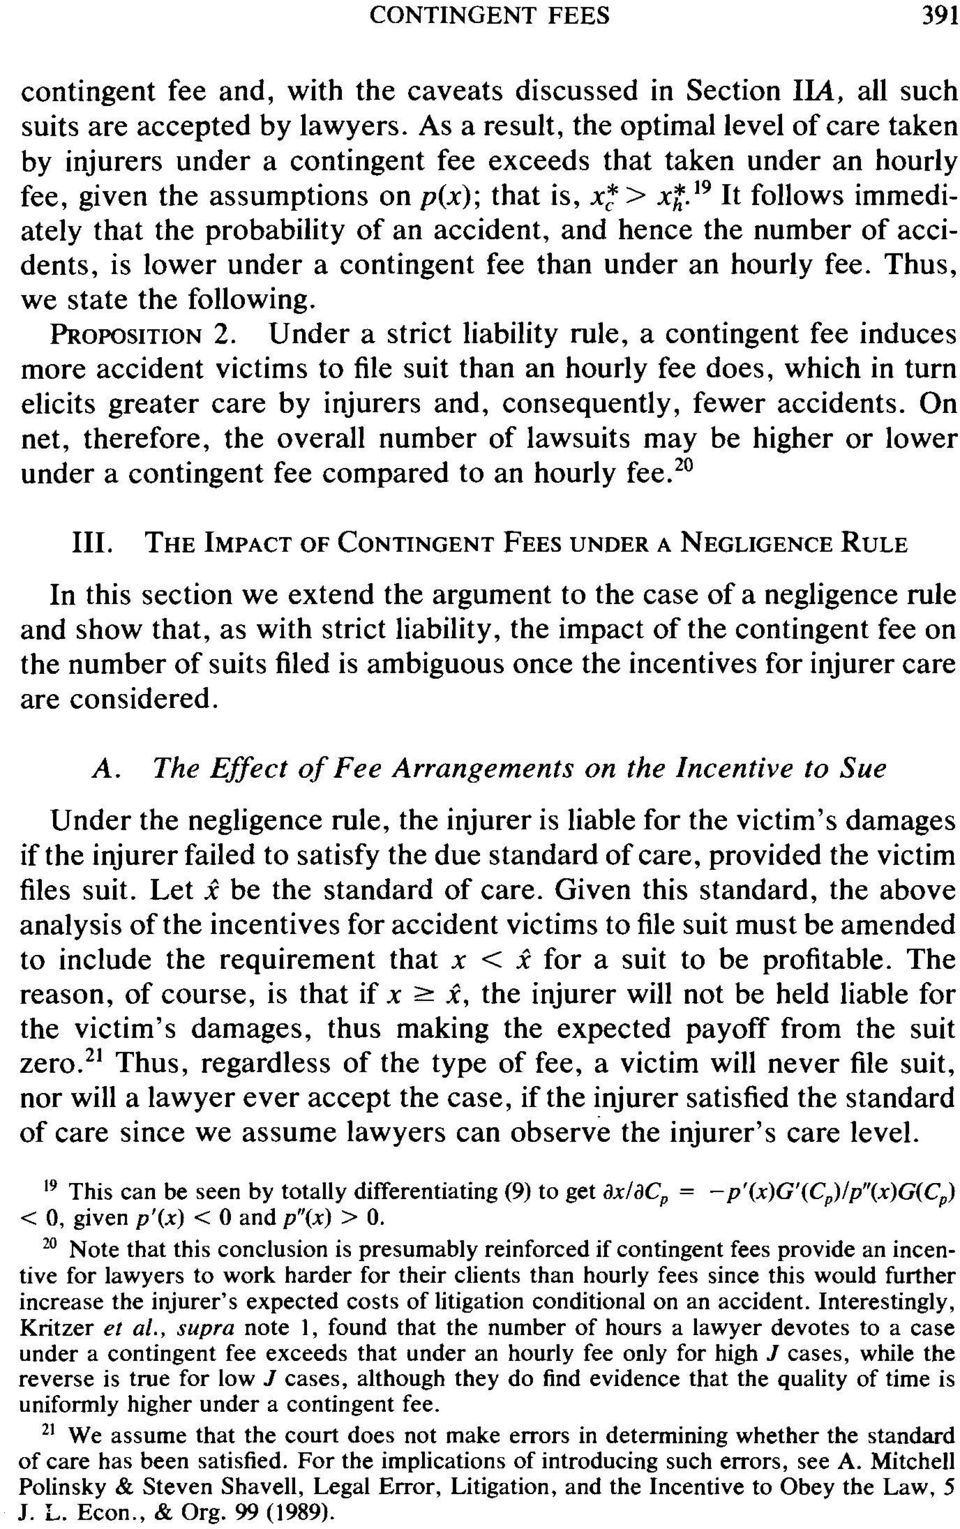 19 It follows immediately that the probability of an accident, and hence the number of accidents, is lower under a contingent fee than under an hourly fee. Thus, we state the following. PROPOSITION 2.